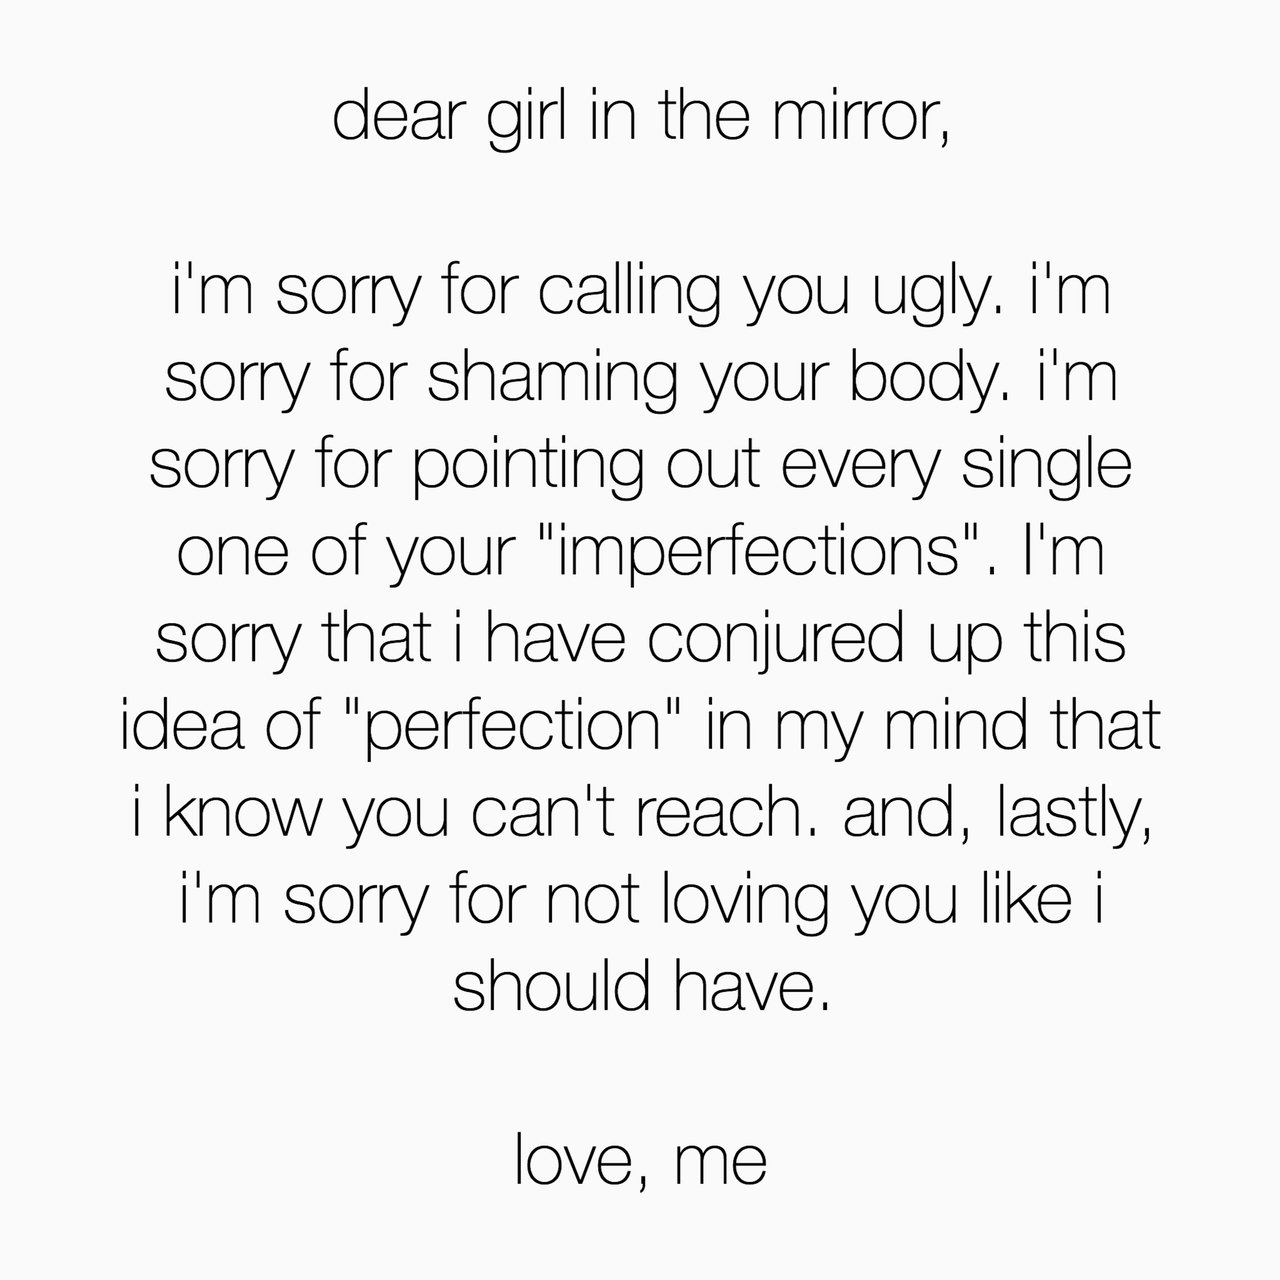 amazing, beautiful, body, body image, girl, imperfect, love, love yourself, me, mirror, perfect, quotes, rants, reflection, relatable, society, teenager, writing, you, perfect imperfections